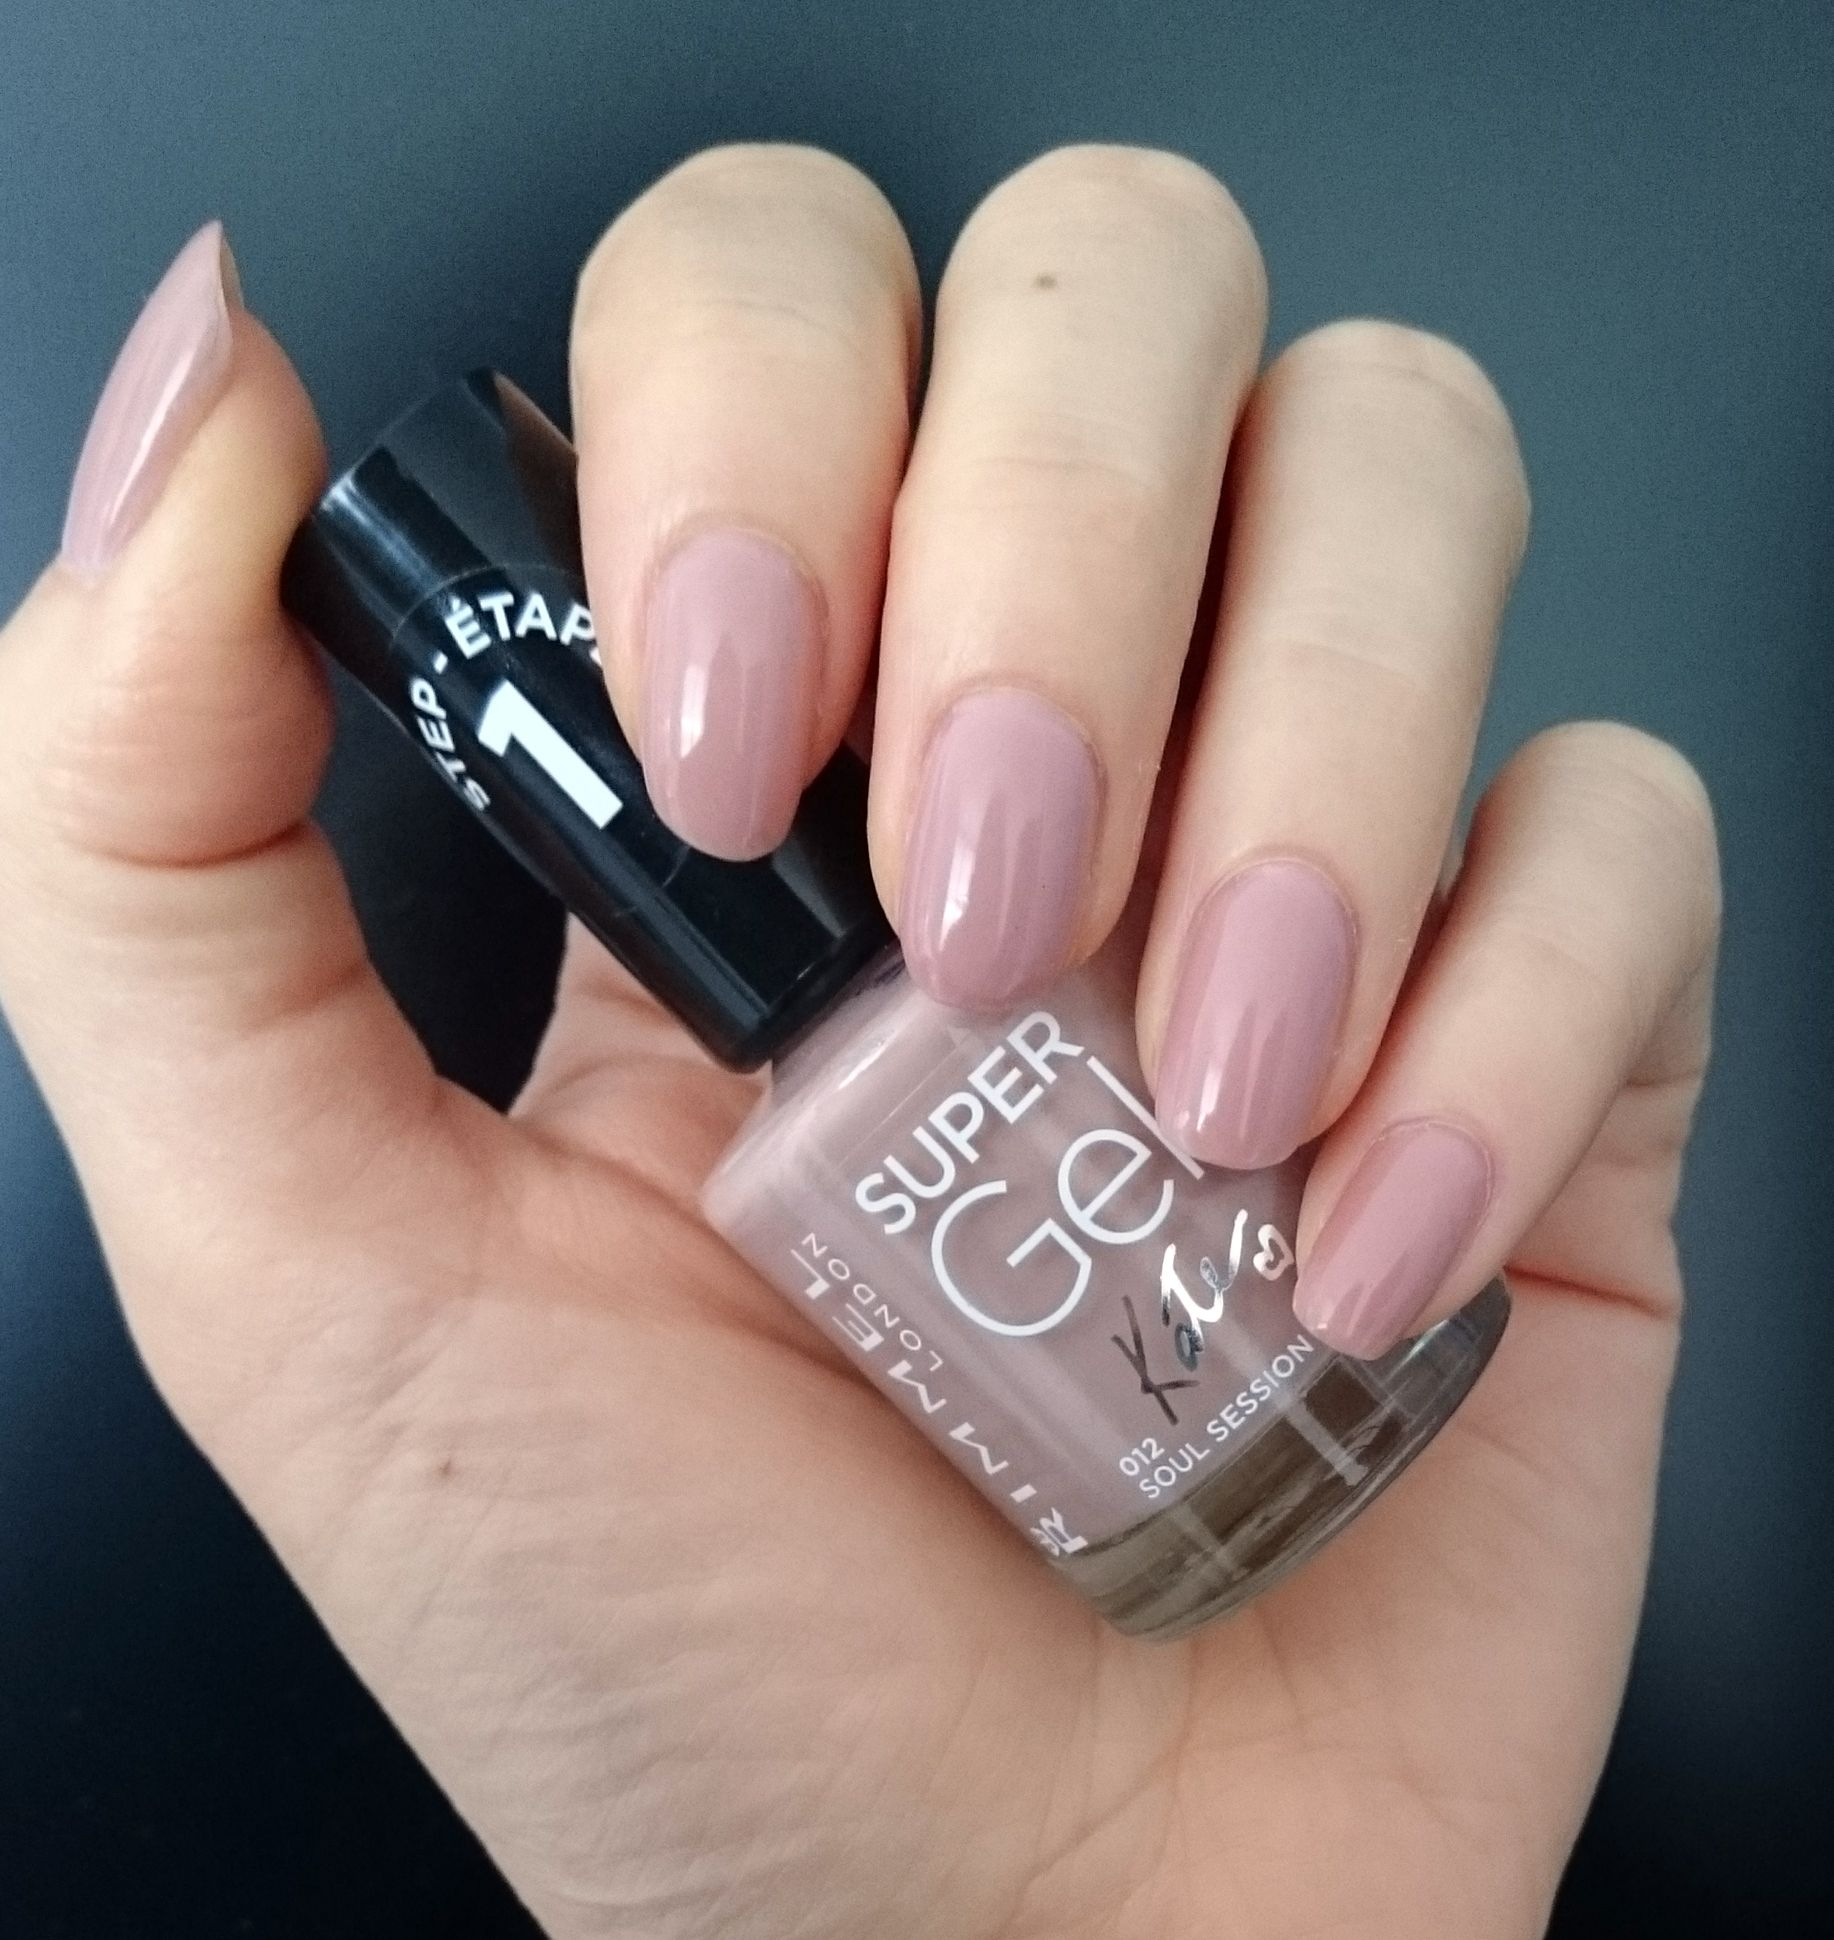 Rimmel Super Gel Nail Polish Soul Session 2 Coats Looks More Pink Or Beige Depending On The Light Rimmel Nail Polish Rimmel Nail Nail Polish